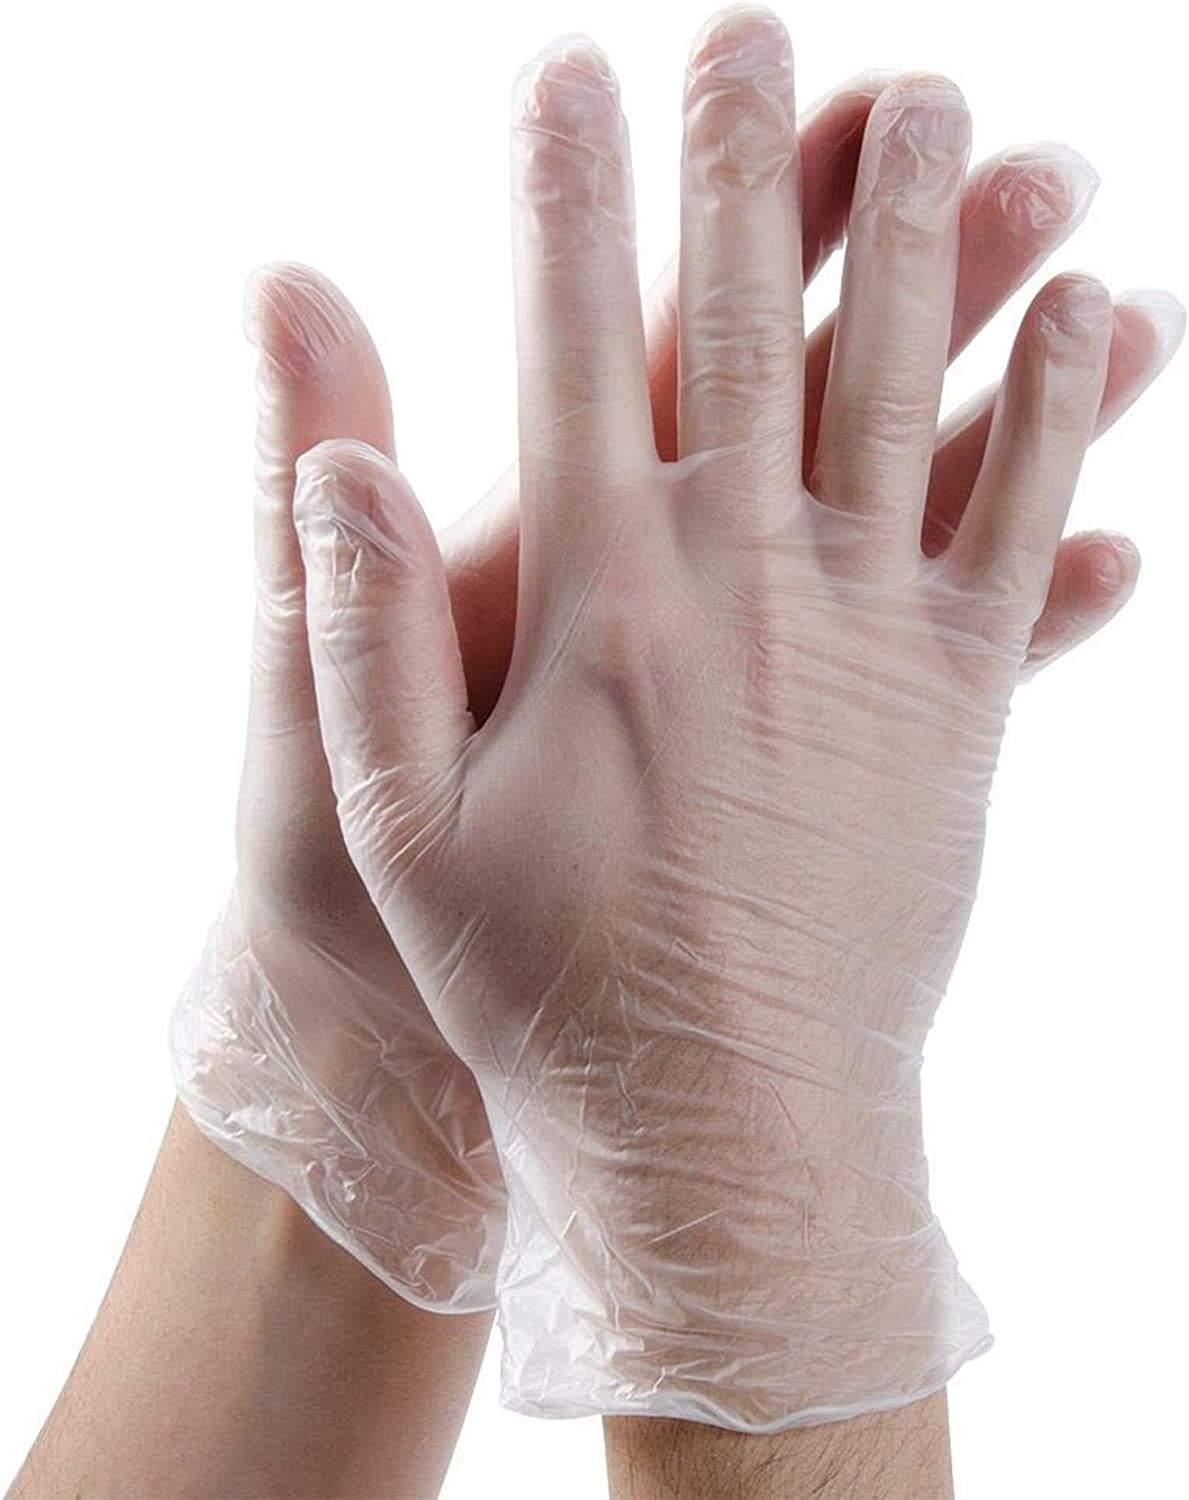 Disposable Latex Free Medical Vinyl Gloves, Disposable Vinyl Gloves, Powder-Free, Non-Sterile, Disposable, Food Safe,Clear Gloves, 4mil, Box of 100 pcs (50 Pairs)